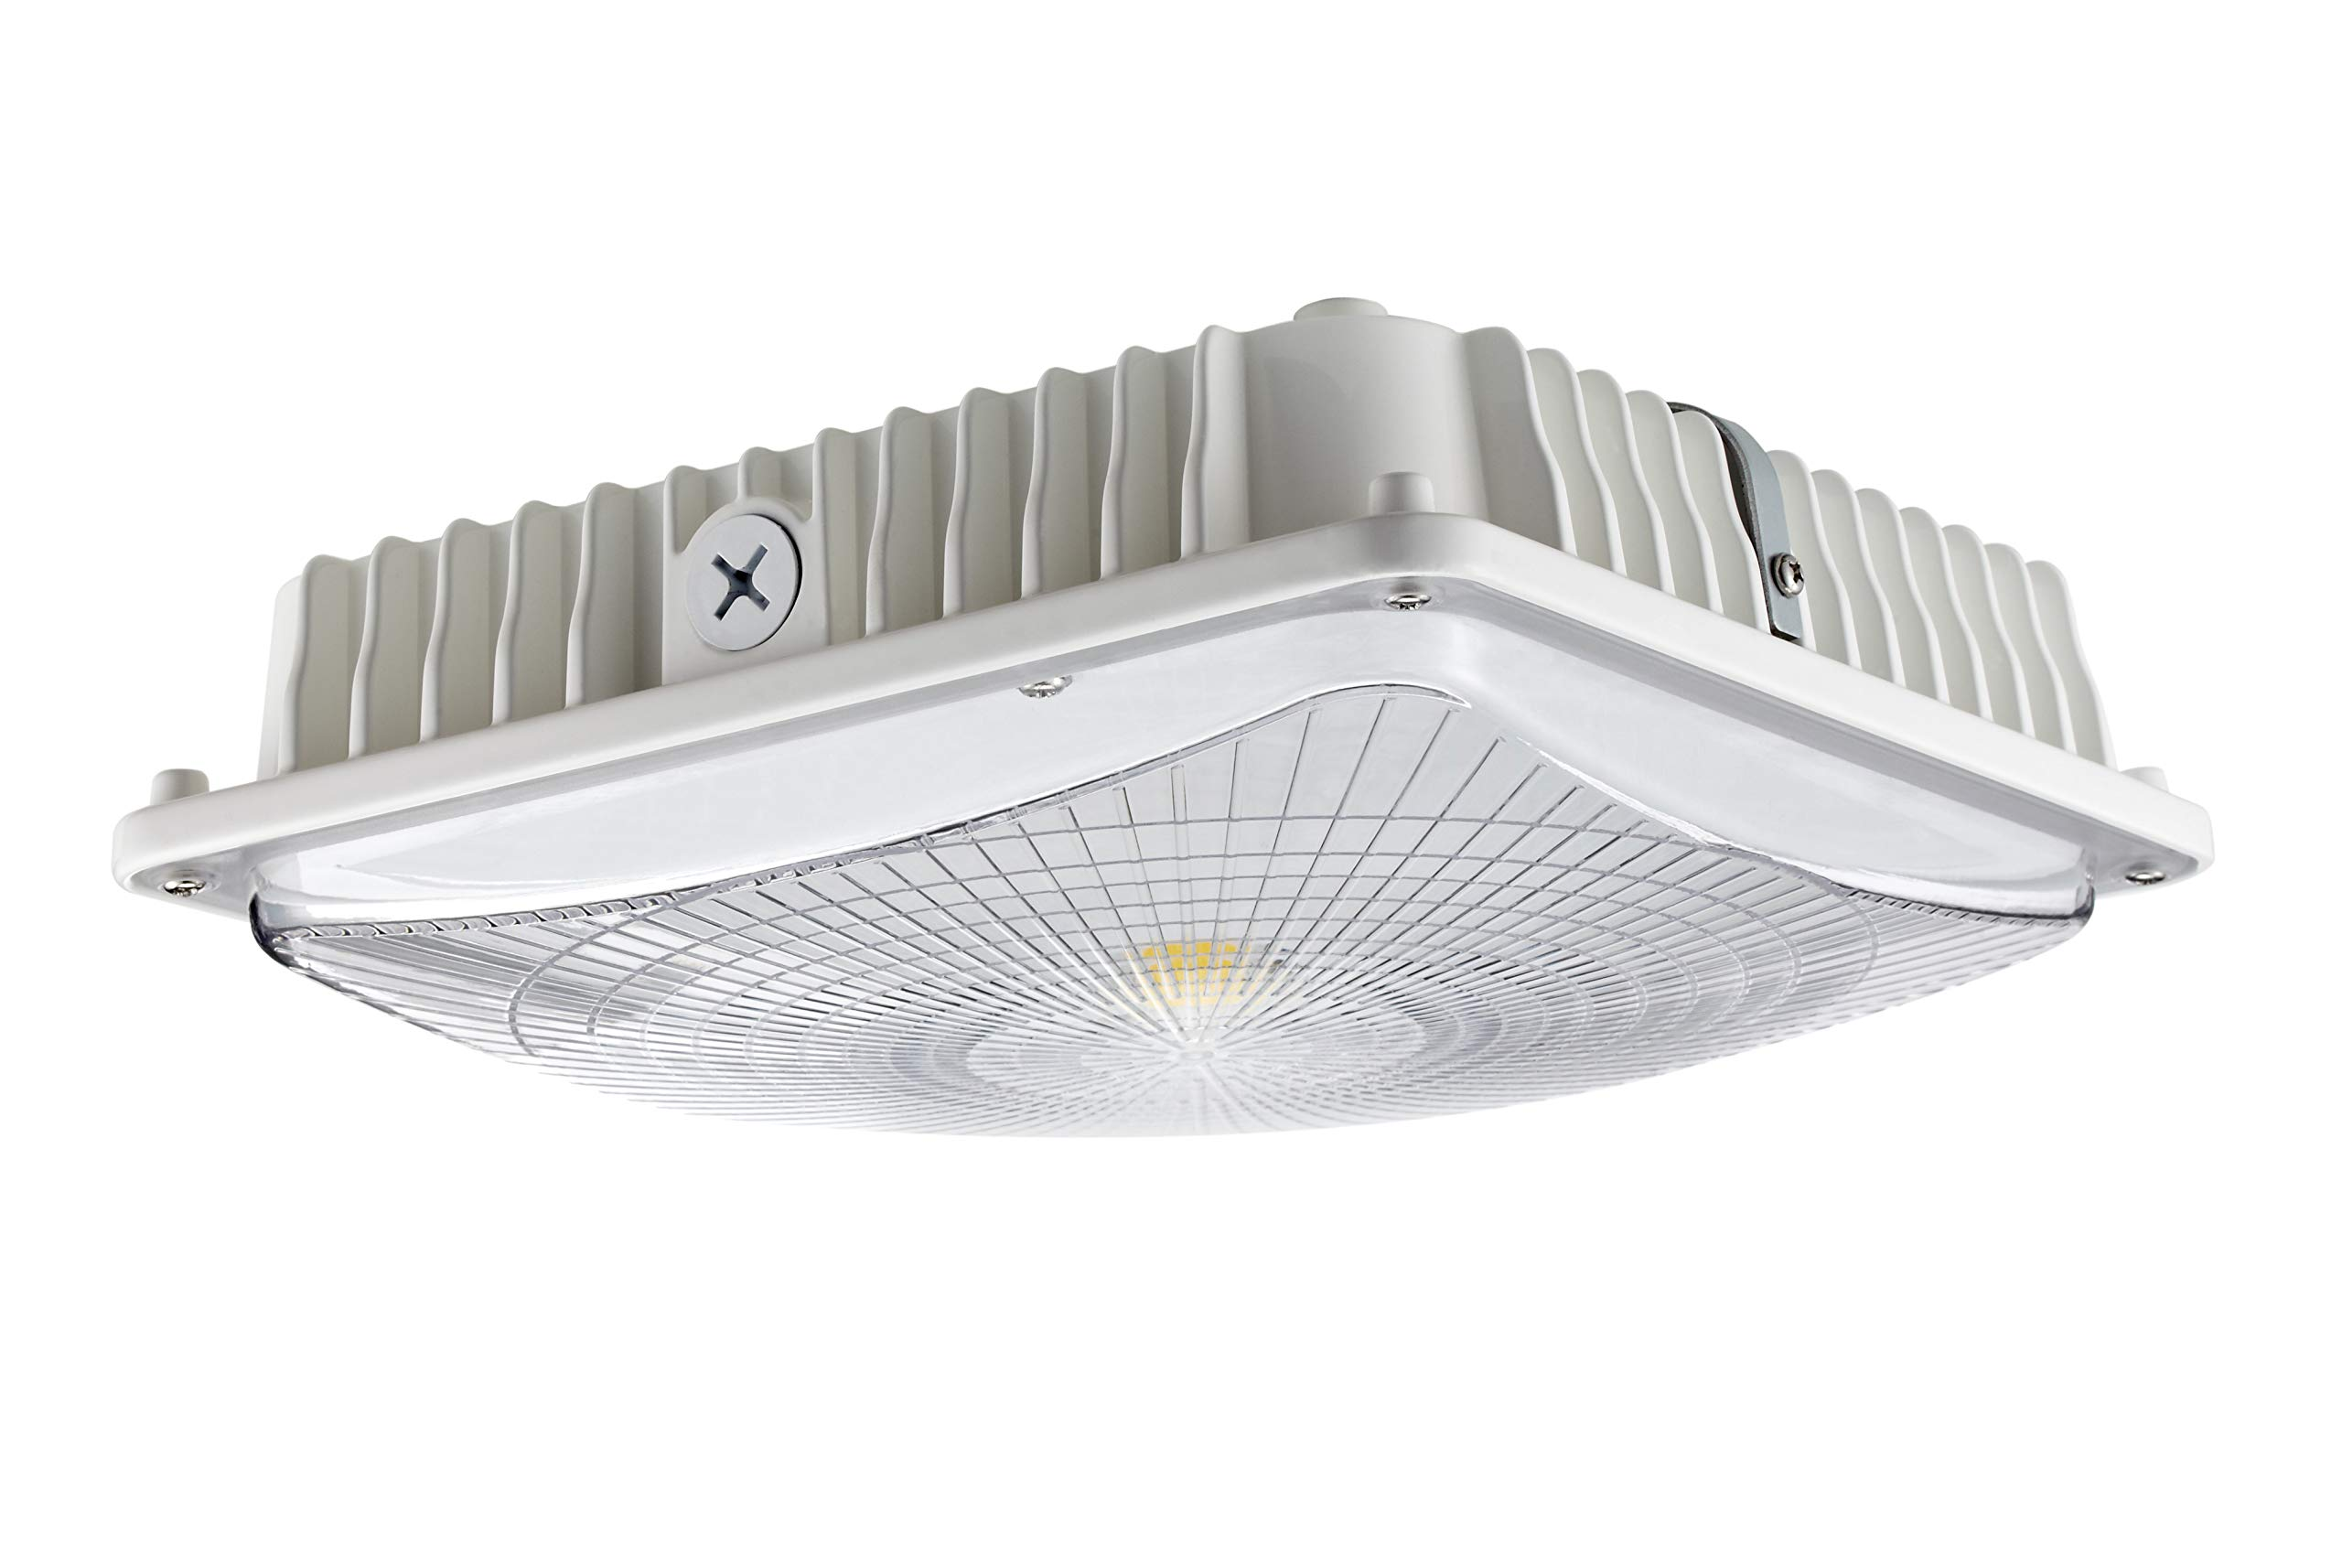 GKOLED 45W White LED Canopy Light, 175-200W MH/HPS/HID Replacement, 5000K Daylight White, 4200Lumen, 120-277VAC, IP65 Waterproof and Outdoor Rated, UL-Listed and DLC-Qualified, 5 Years Warranty